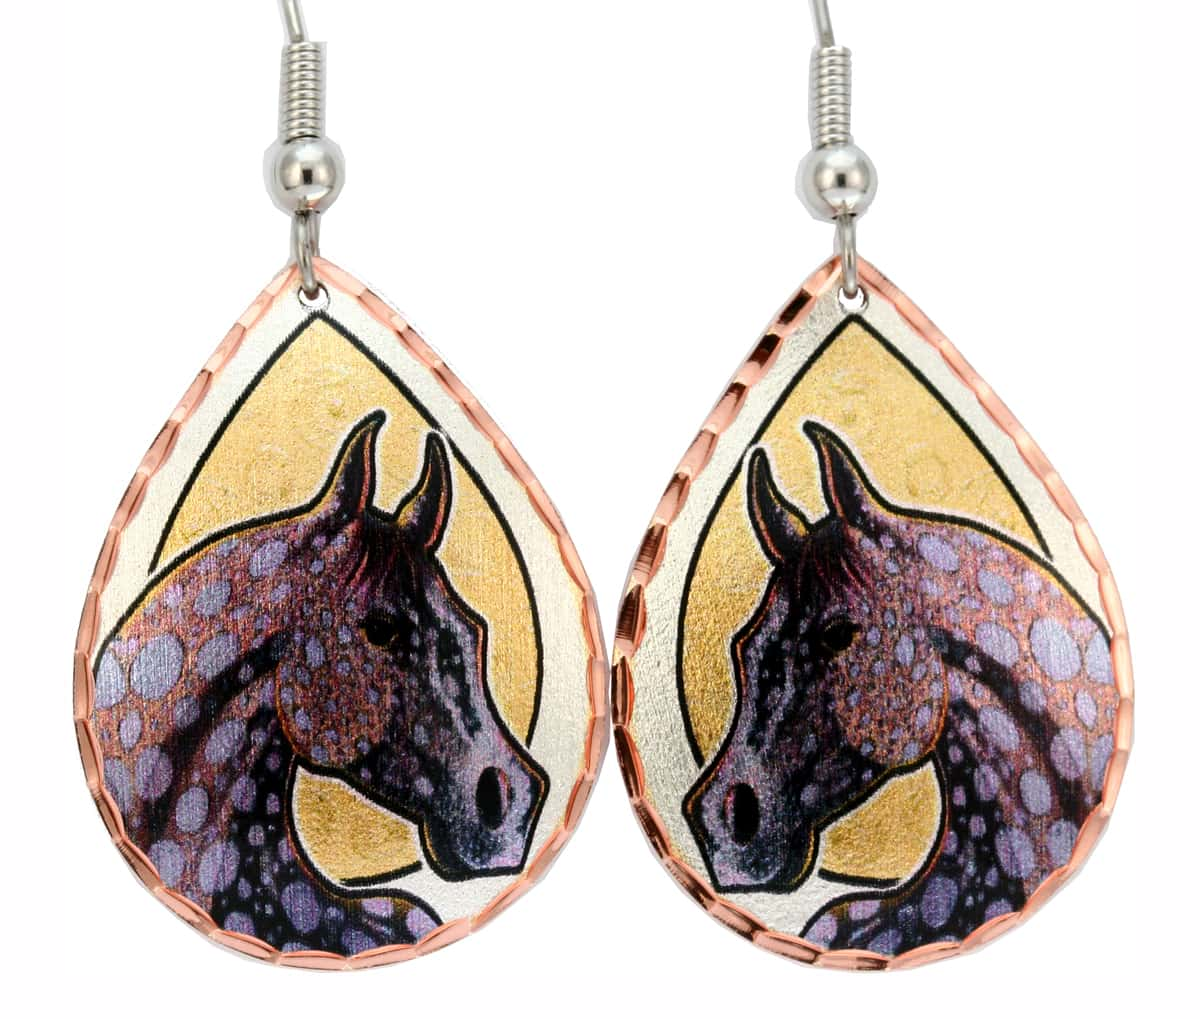 Dapple Grey Horse Earrings Bob Coonts